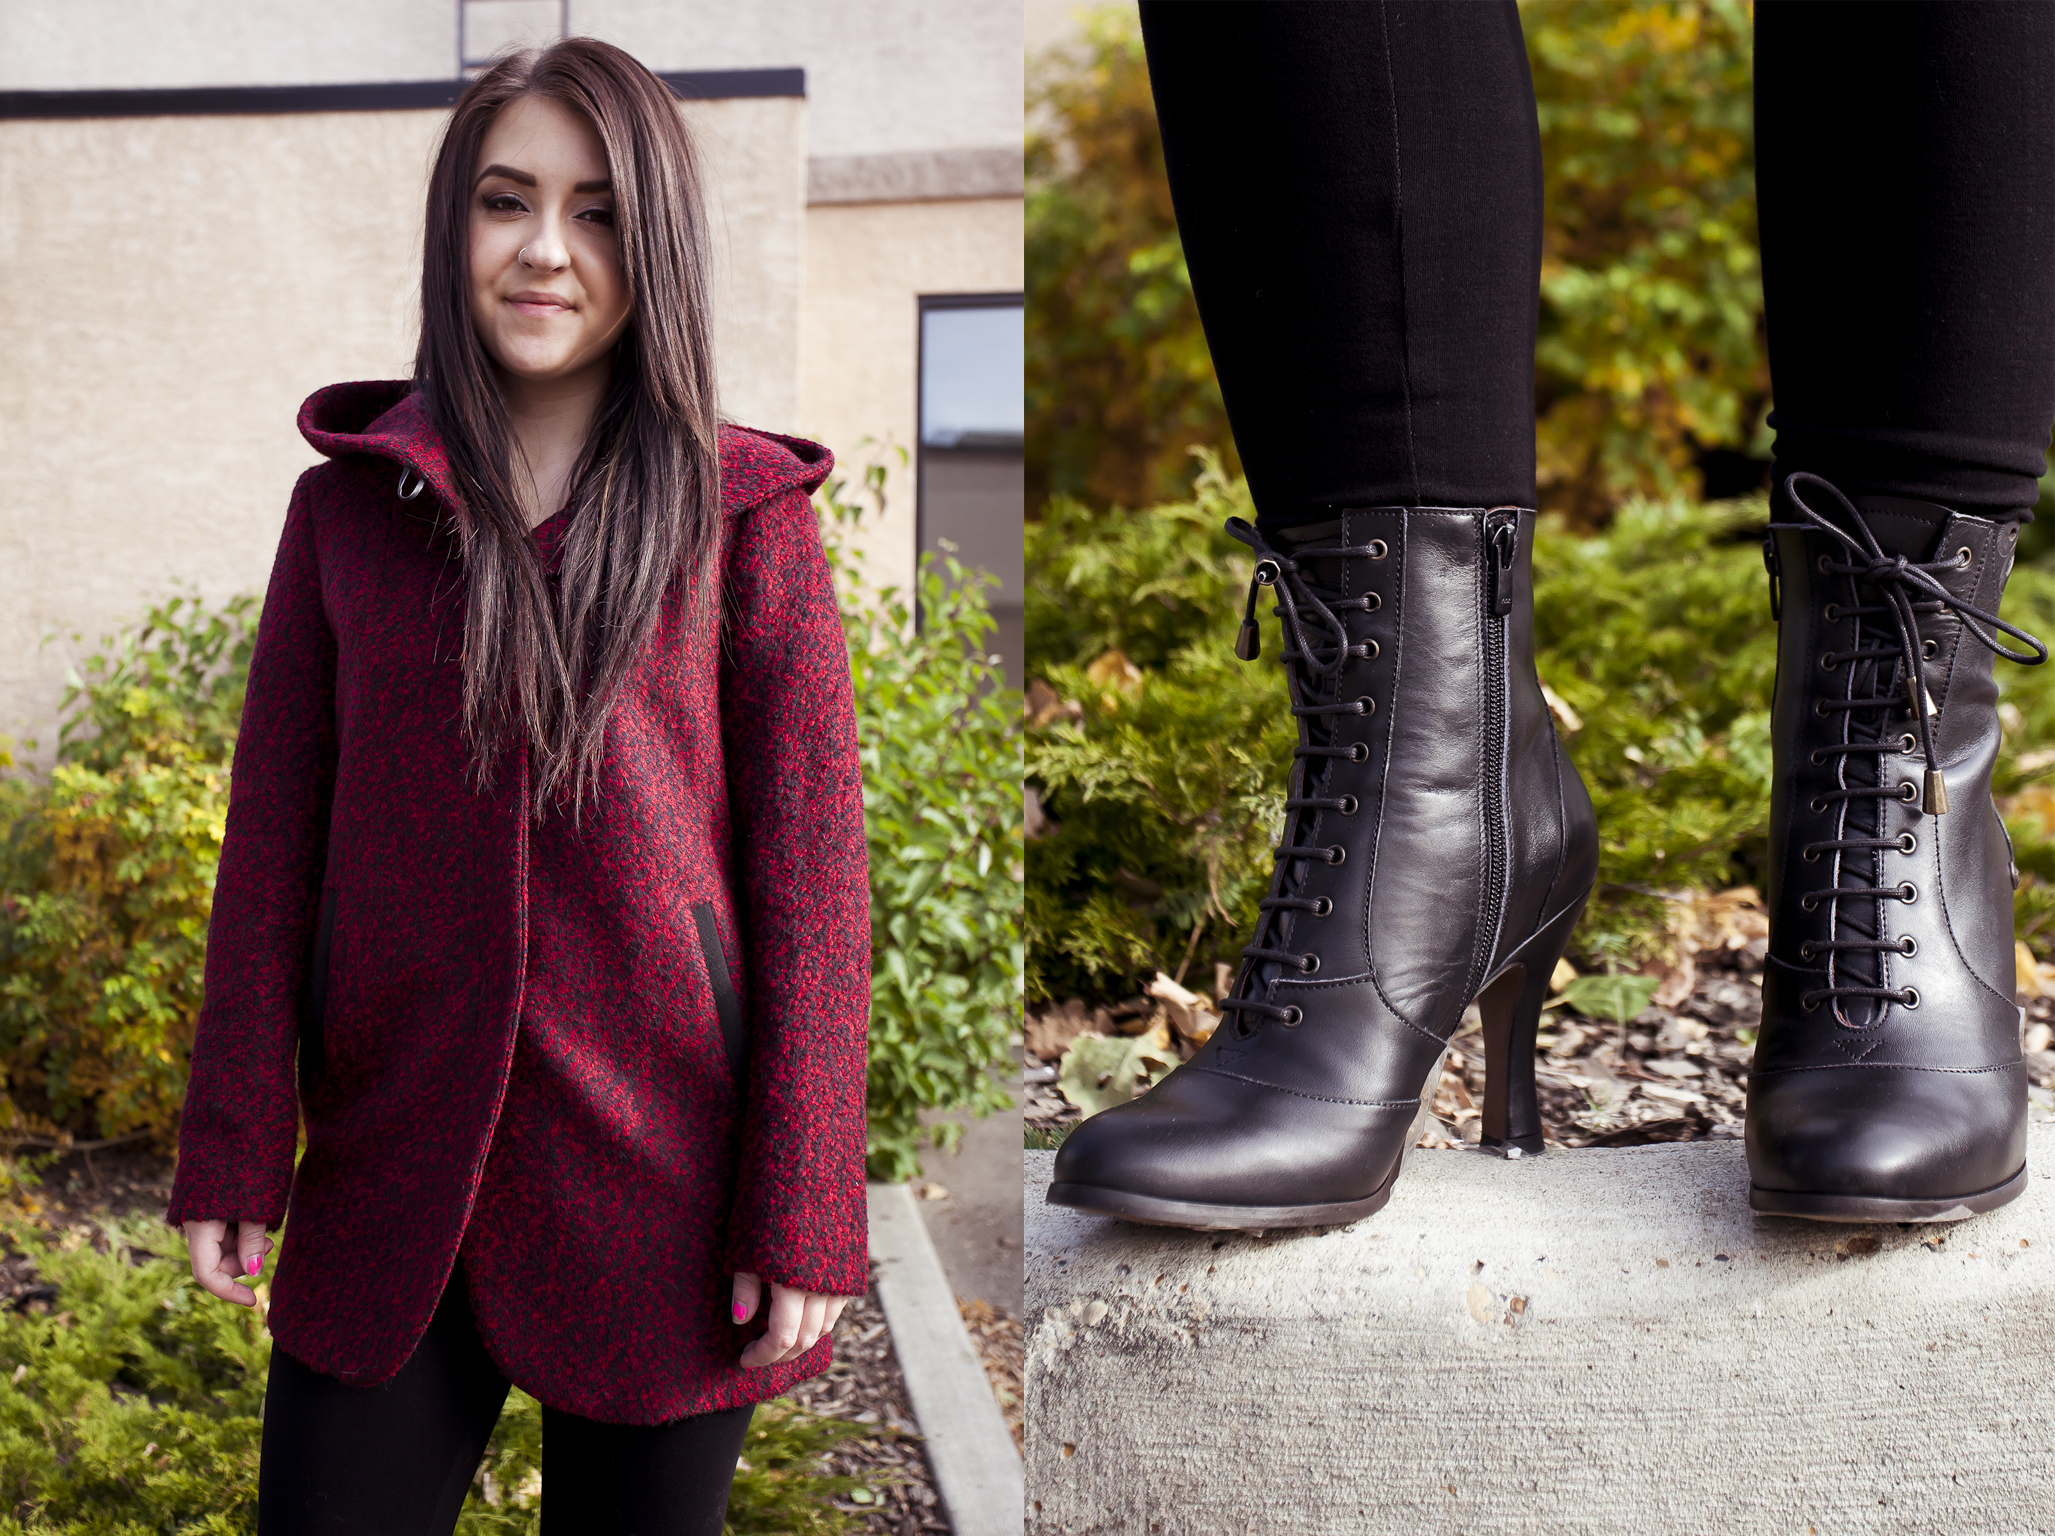 bella maas boutique st albert sherwood park edmonton soia and kyo neosens boots fall fashion 04